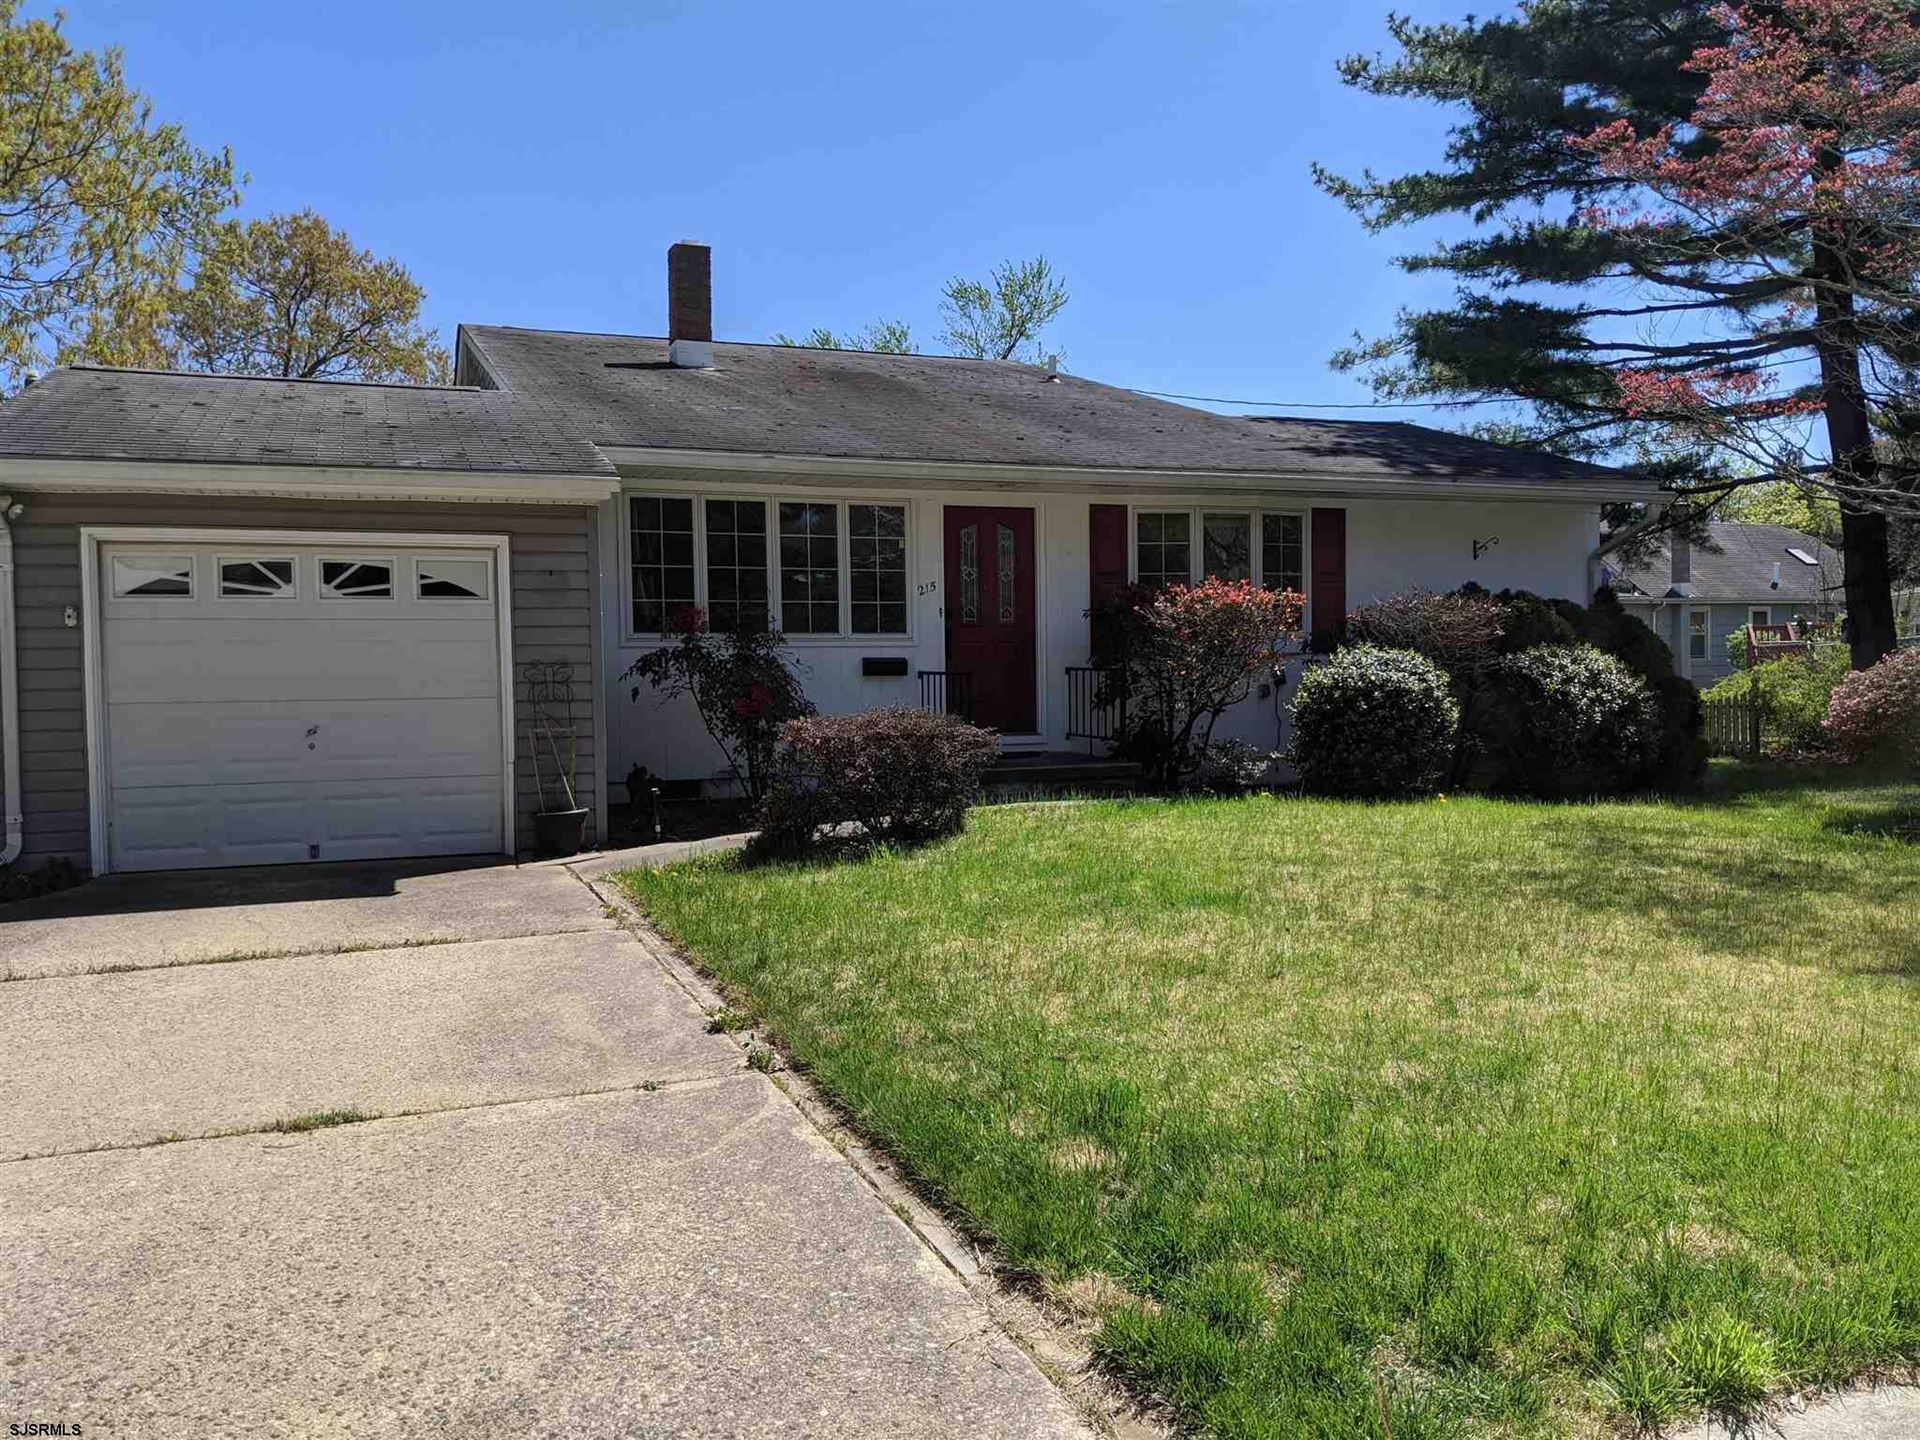 215 Hobart Ave Ave, Absecon, NJ 08201 - #: 550171